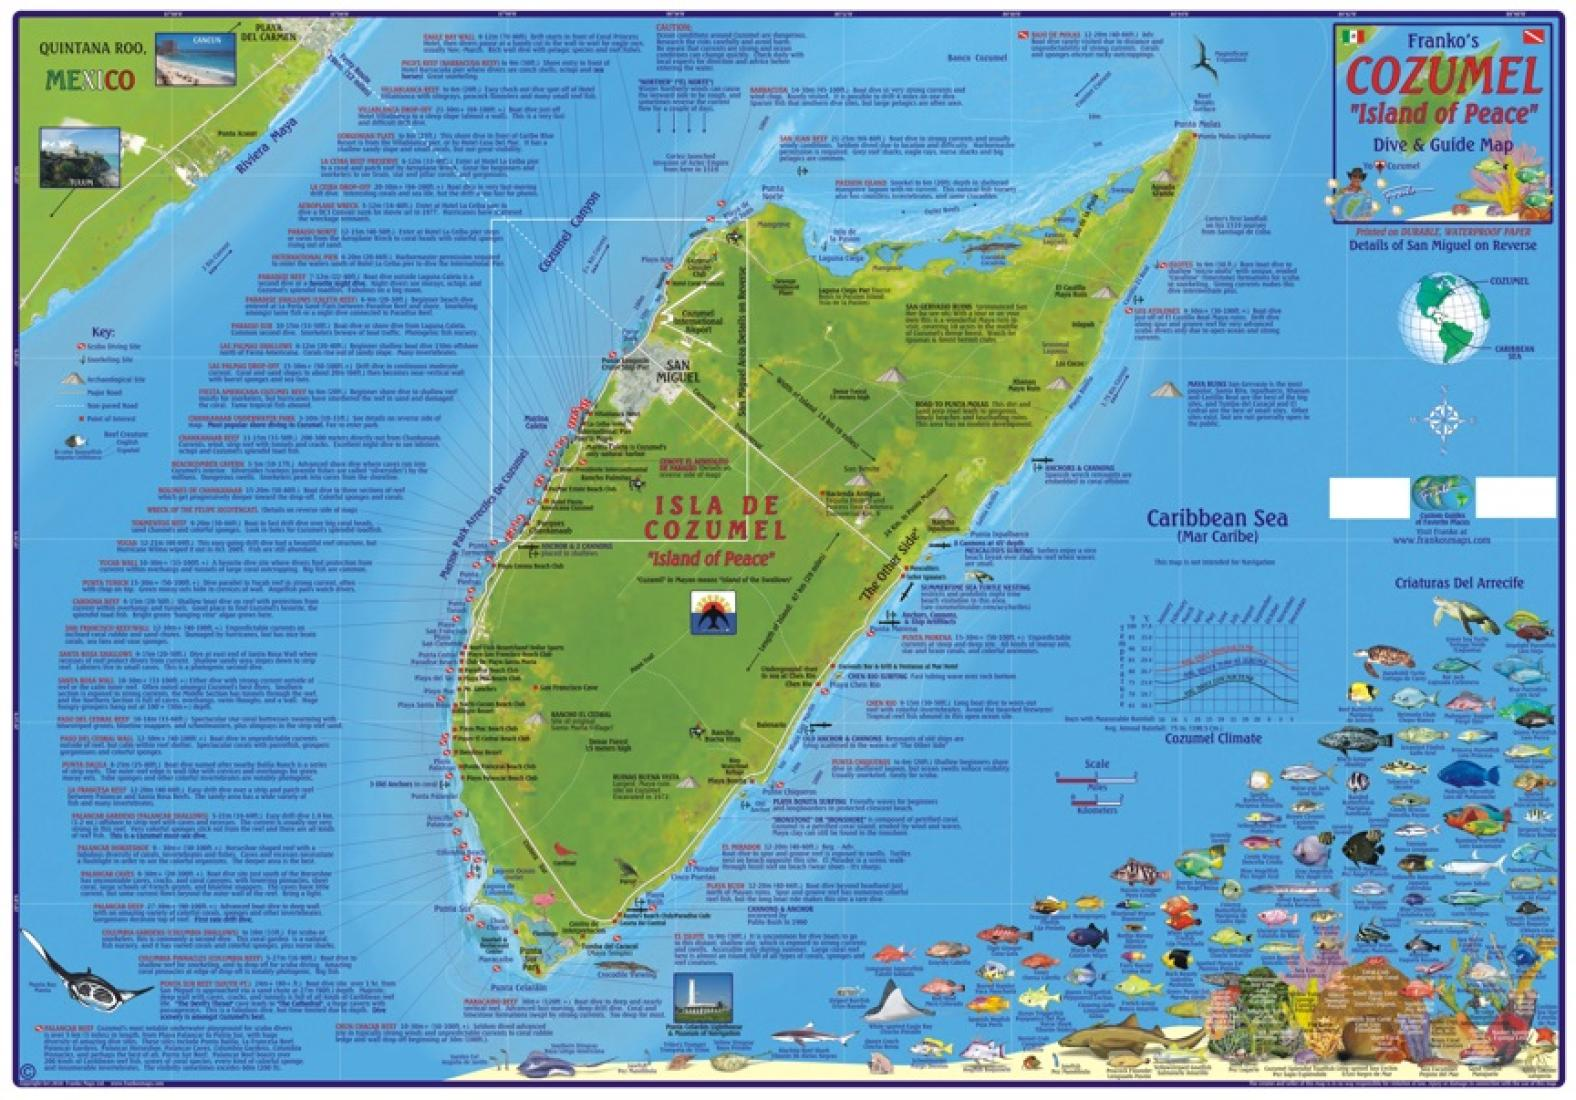 Caribbean Map, Cozumel Dive and Guide, laminated, 2010 by Frankos Maps Ltd.